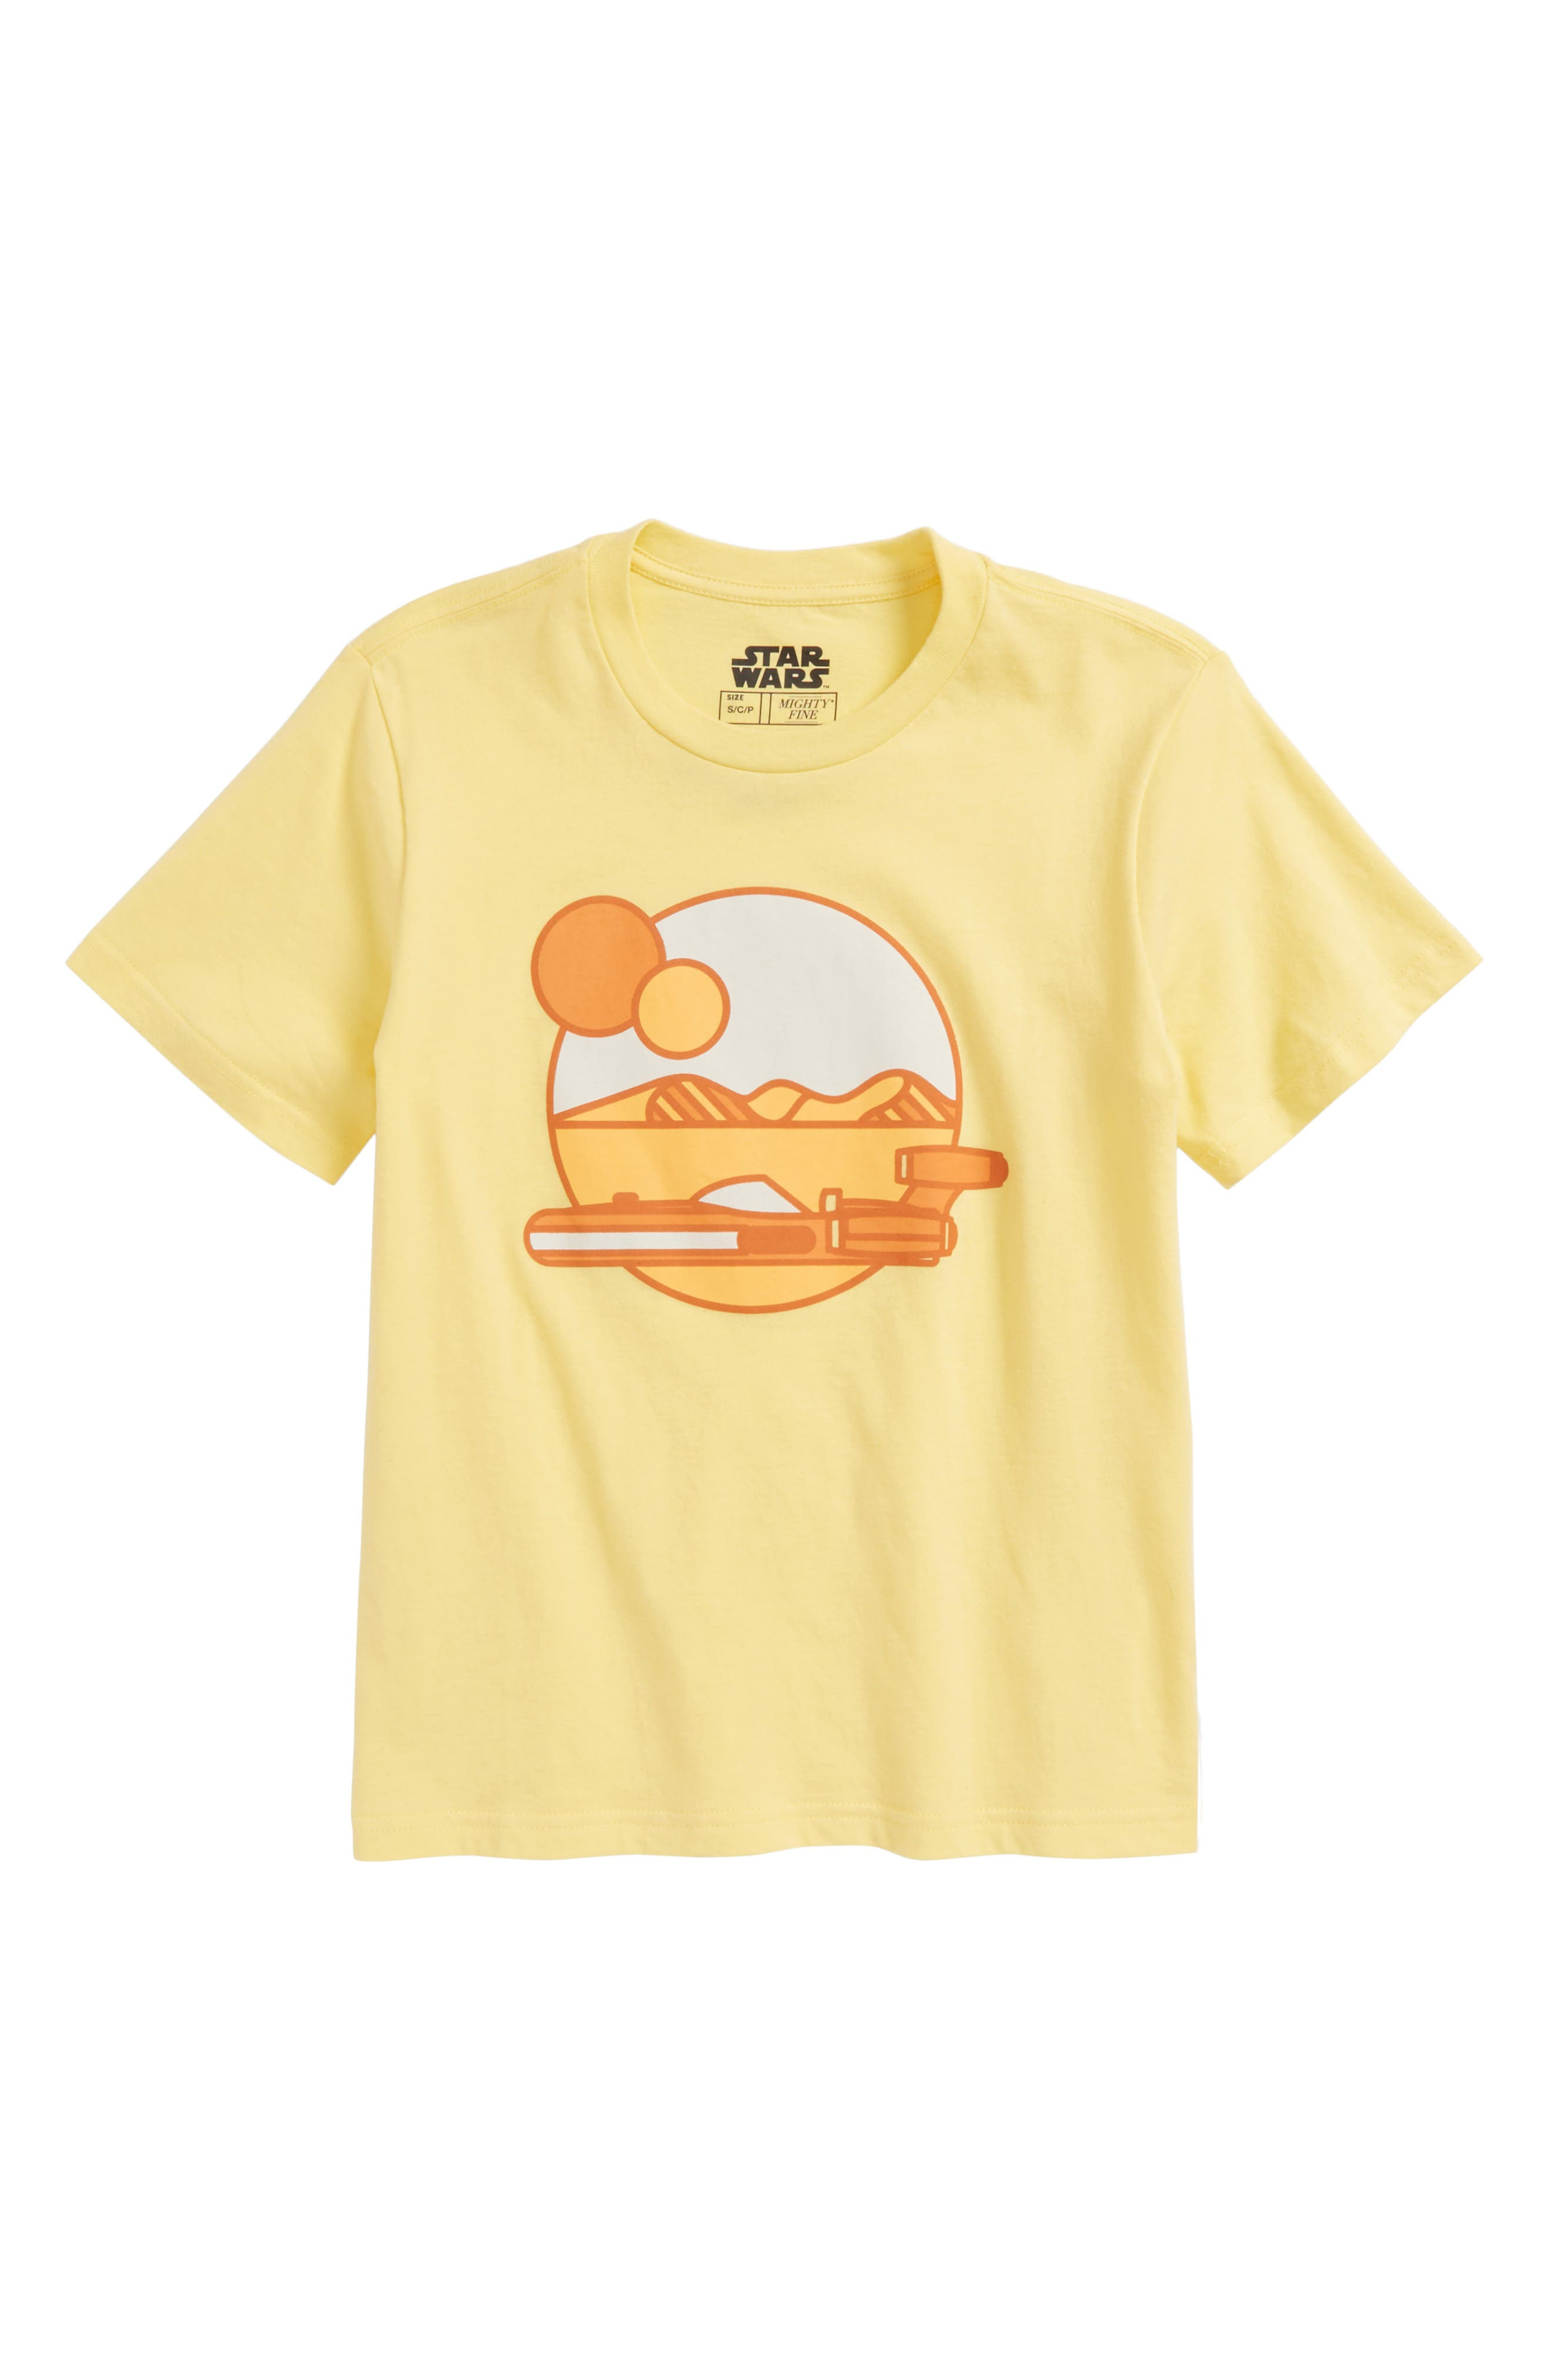 Star Wars<sup>™</sup> Tatooine Sunset Graphic T-Shirt,                         Main,                         color, Yellow